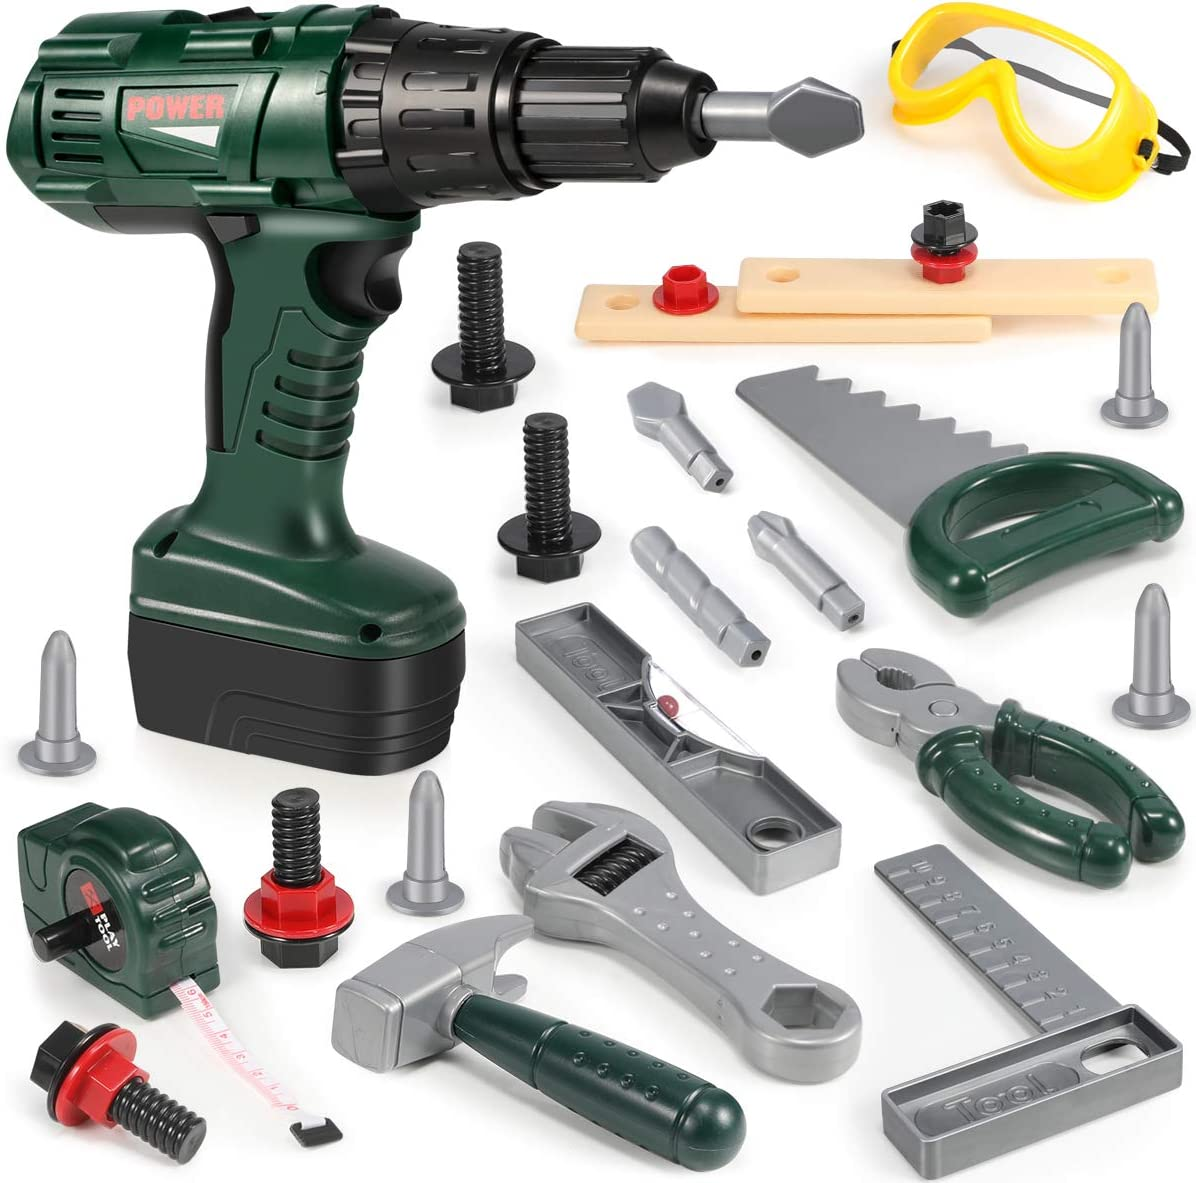 Geyiie Kids Tool Set with Power Toy Drill, Pretend Play Tool Kit for Children Construction Toy Tool Sets, Great Gift for 3 4 5 6 7 Year Old Age Boys and Girls